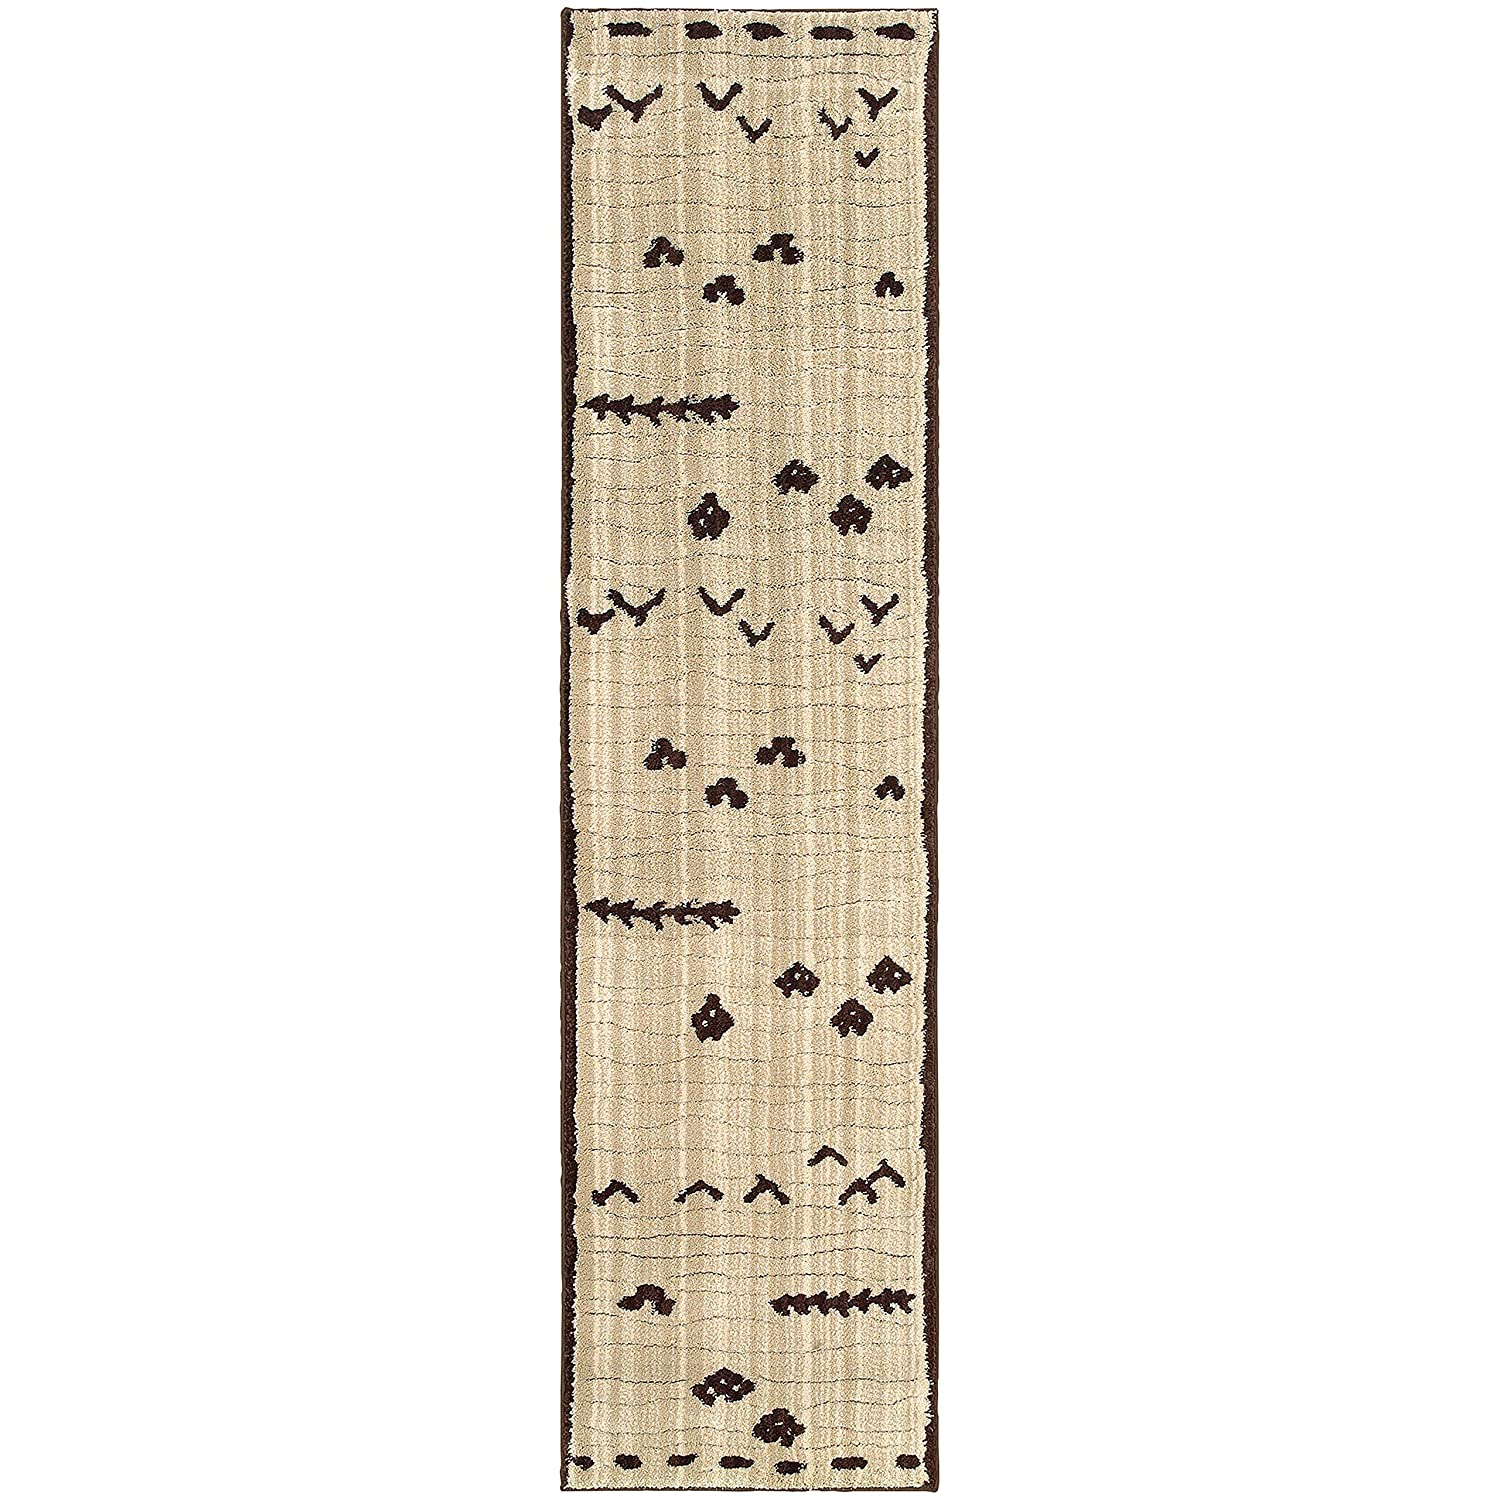 Christopher Knight Home Mesa Indoor Runner 2ft 7in X 10ft Ivory,Brown